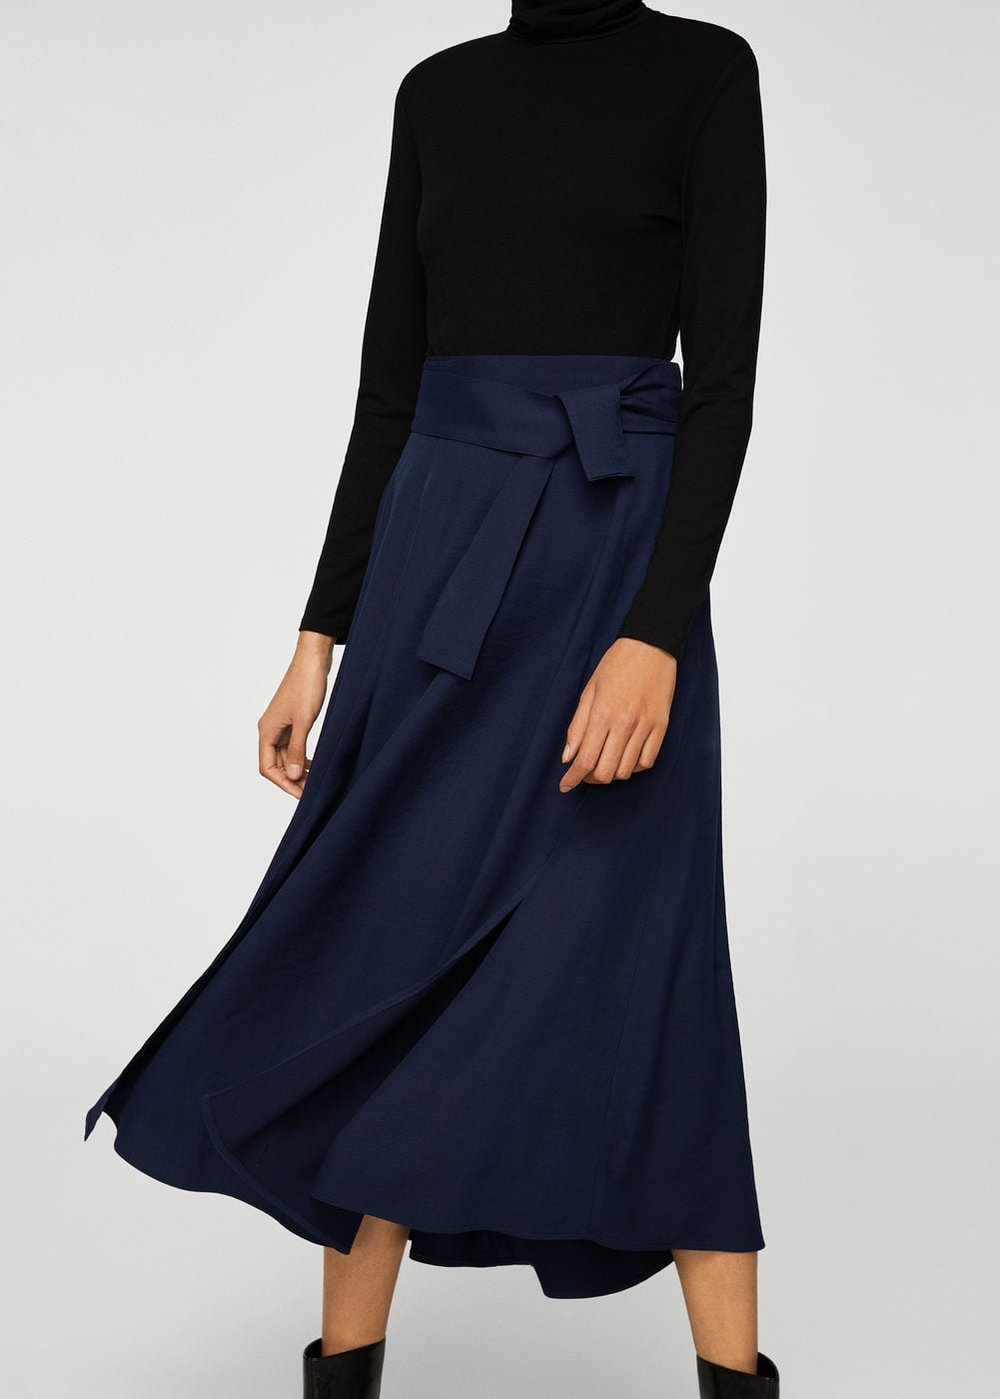 Belt Long Skirt, Mango, £49.99